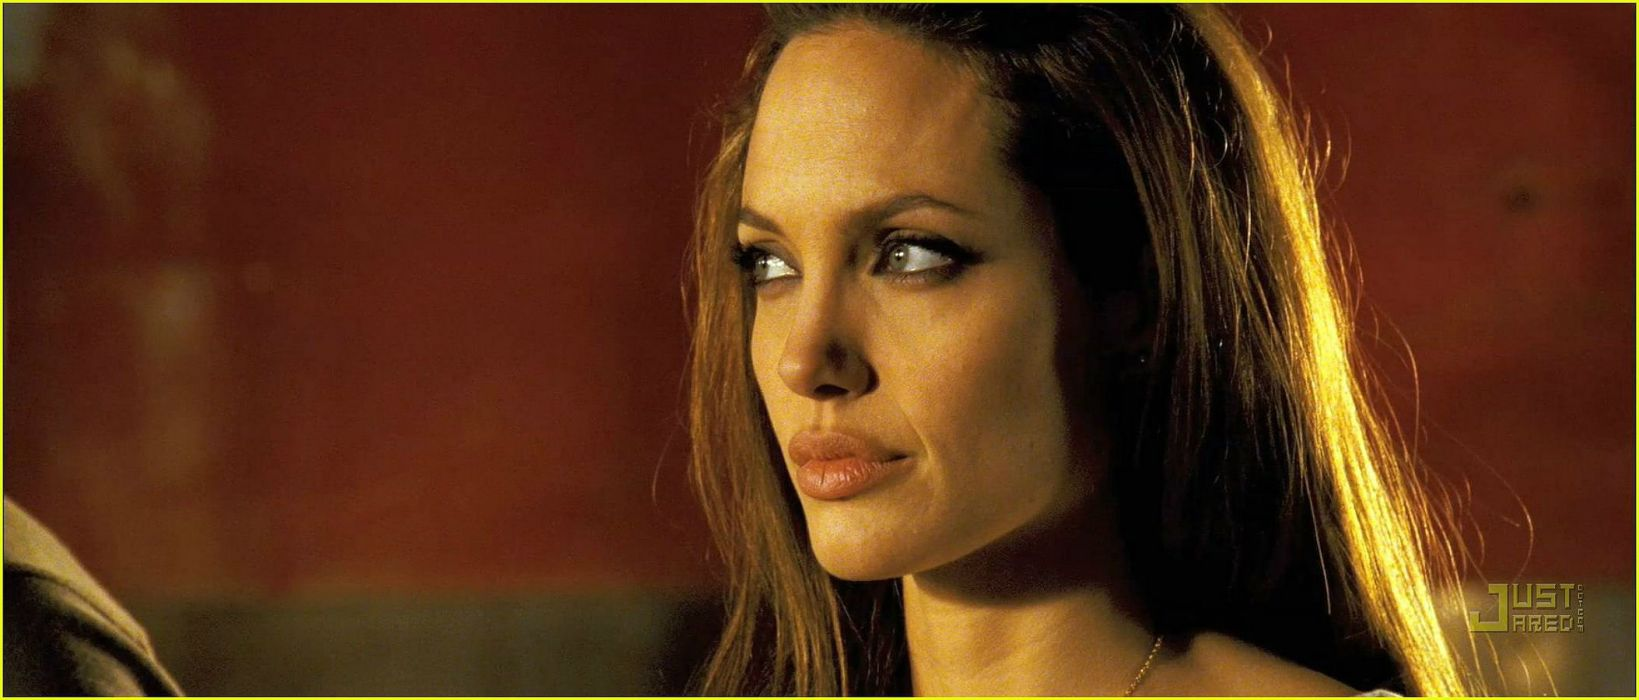 WANTED action crime fantasy sci-fi jolie (50) wallpaper